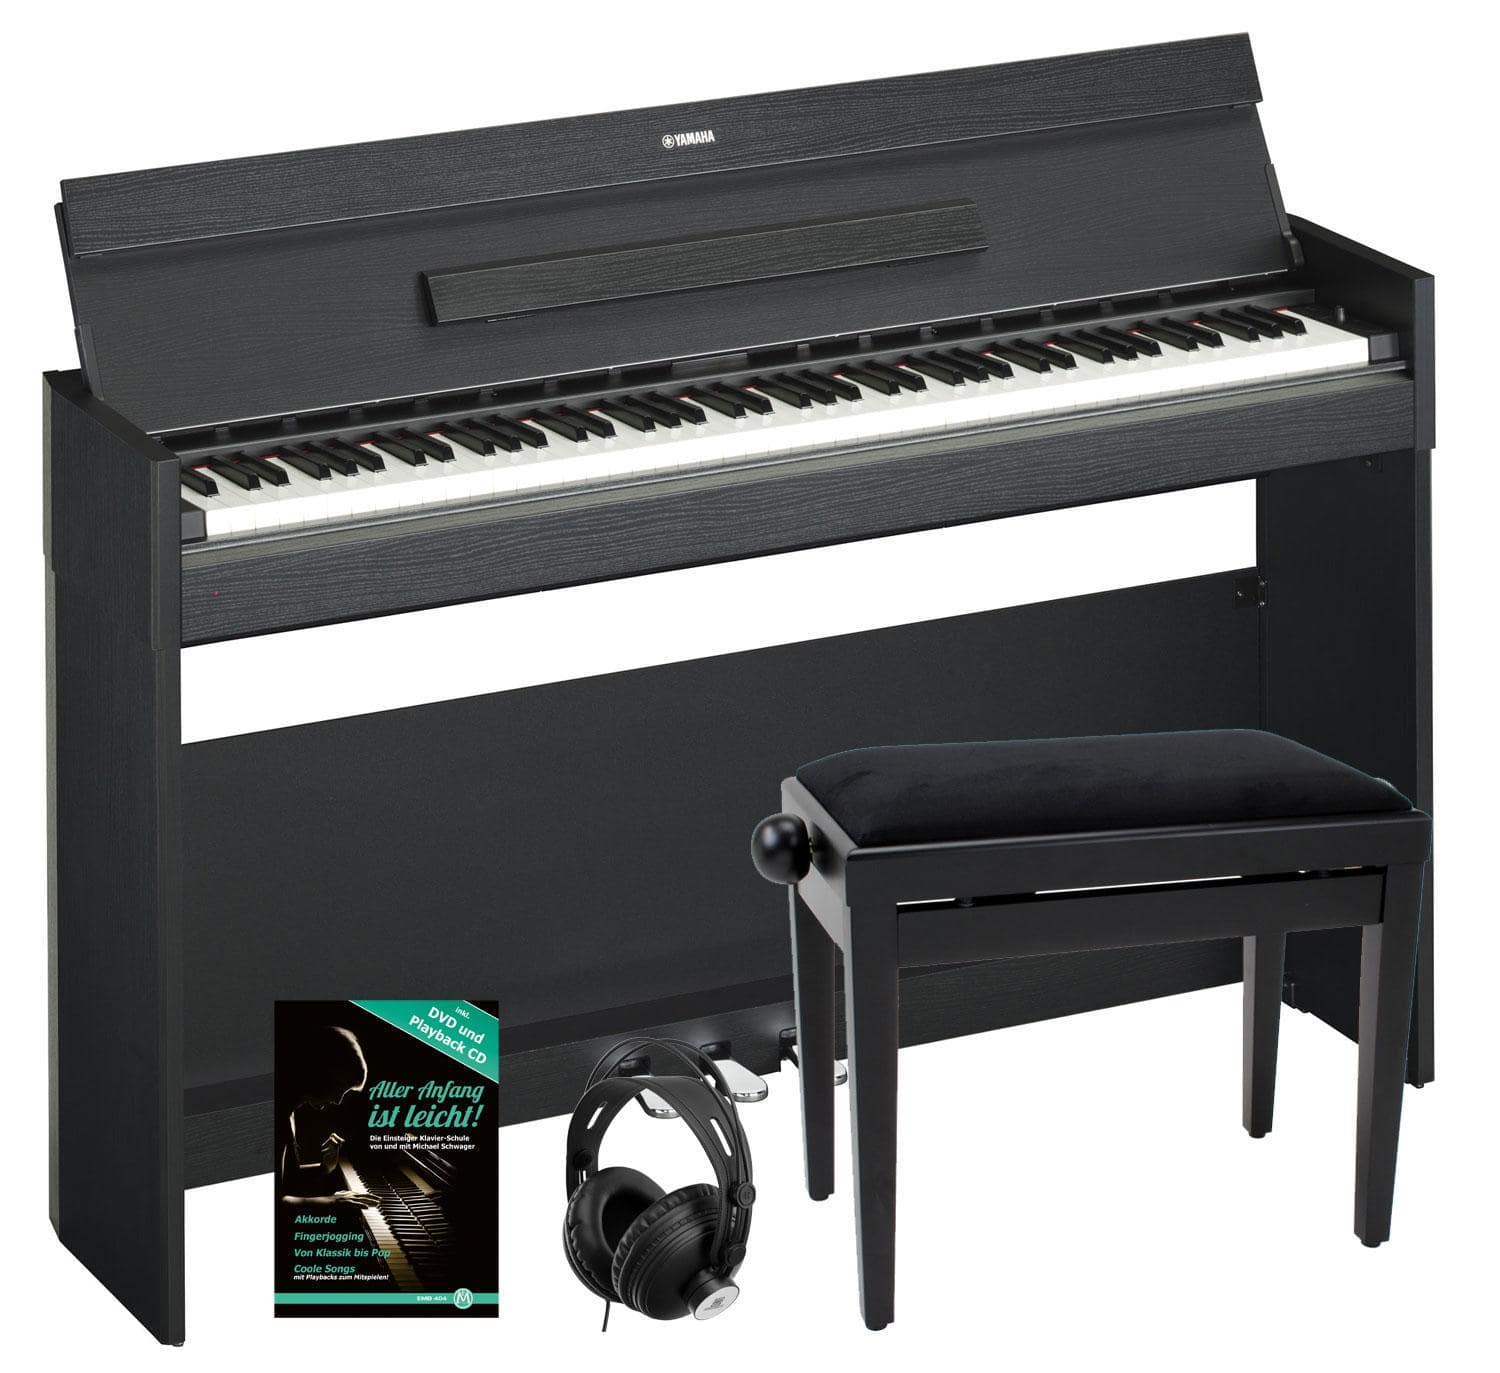 Yamaha arius ydp s52 b digitalpiano schwarz set inkl bank for Yamaha ydp s52